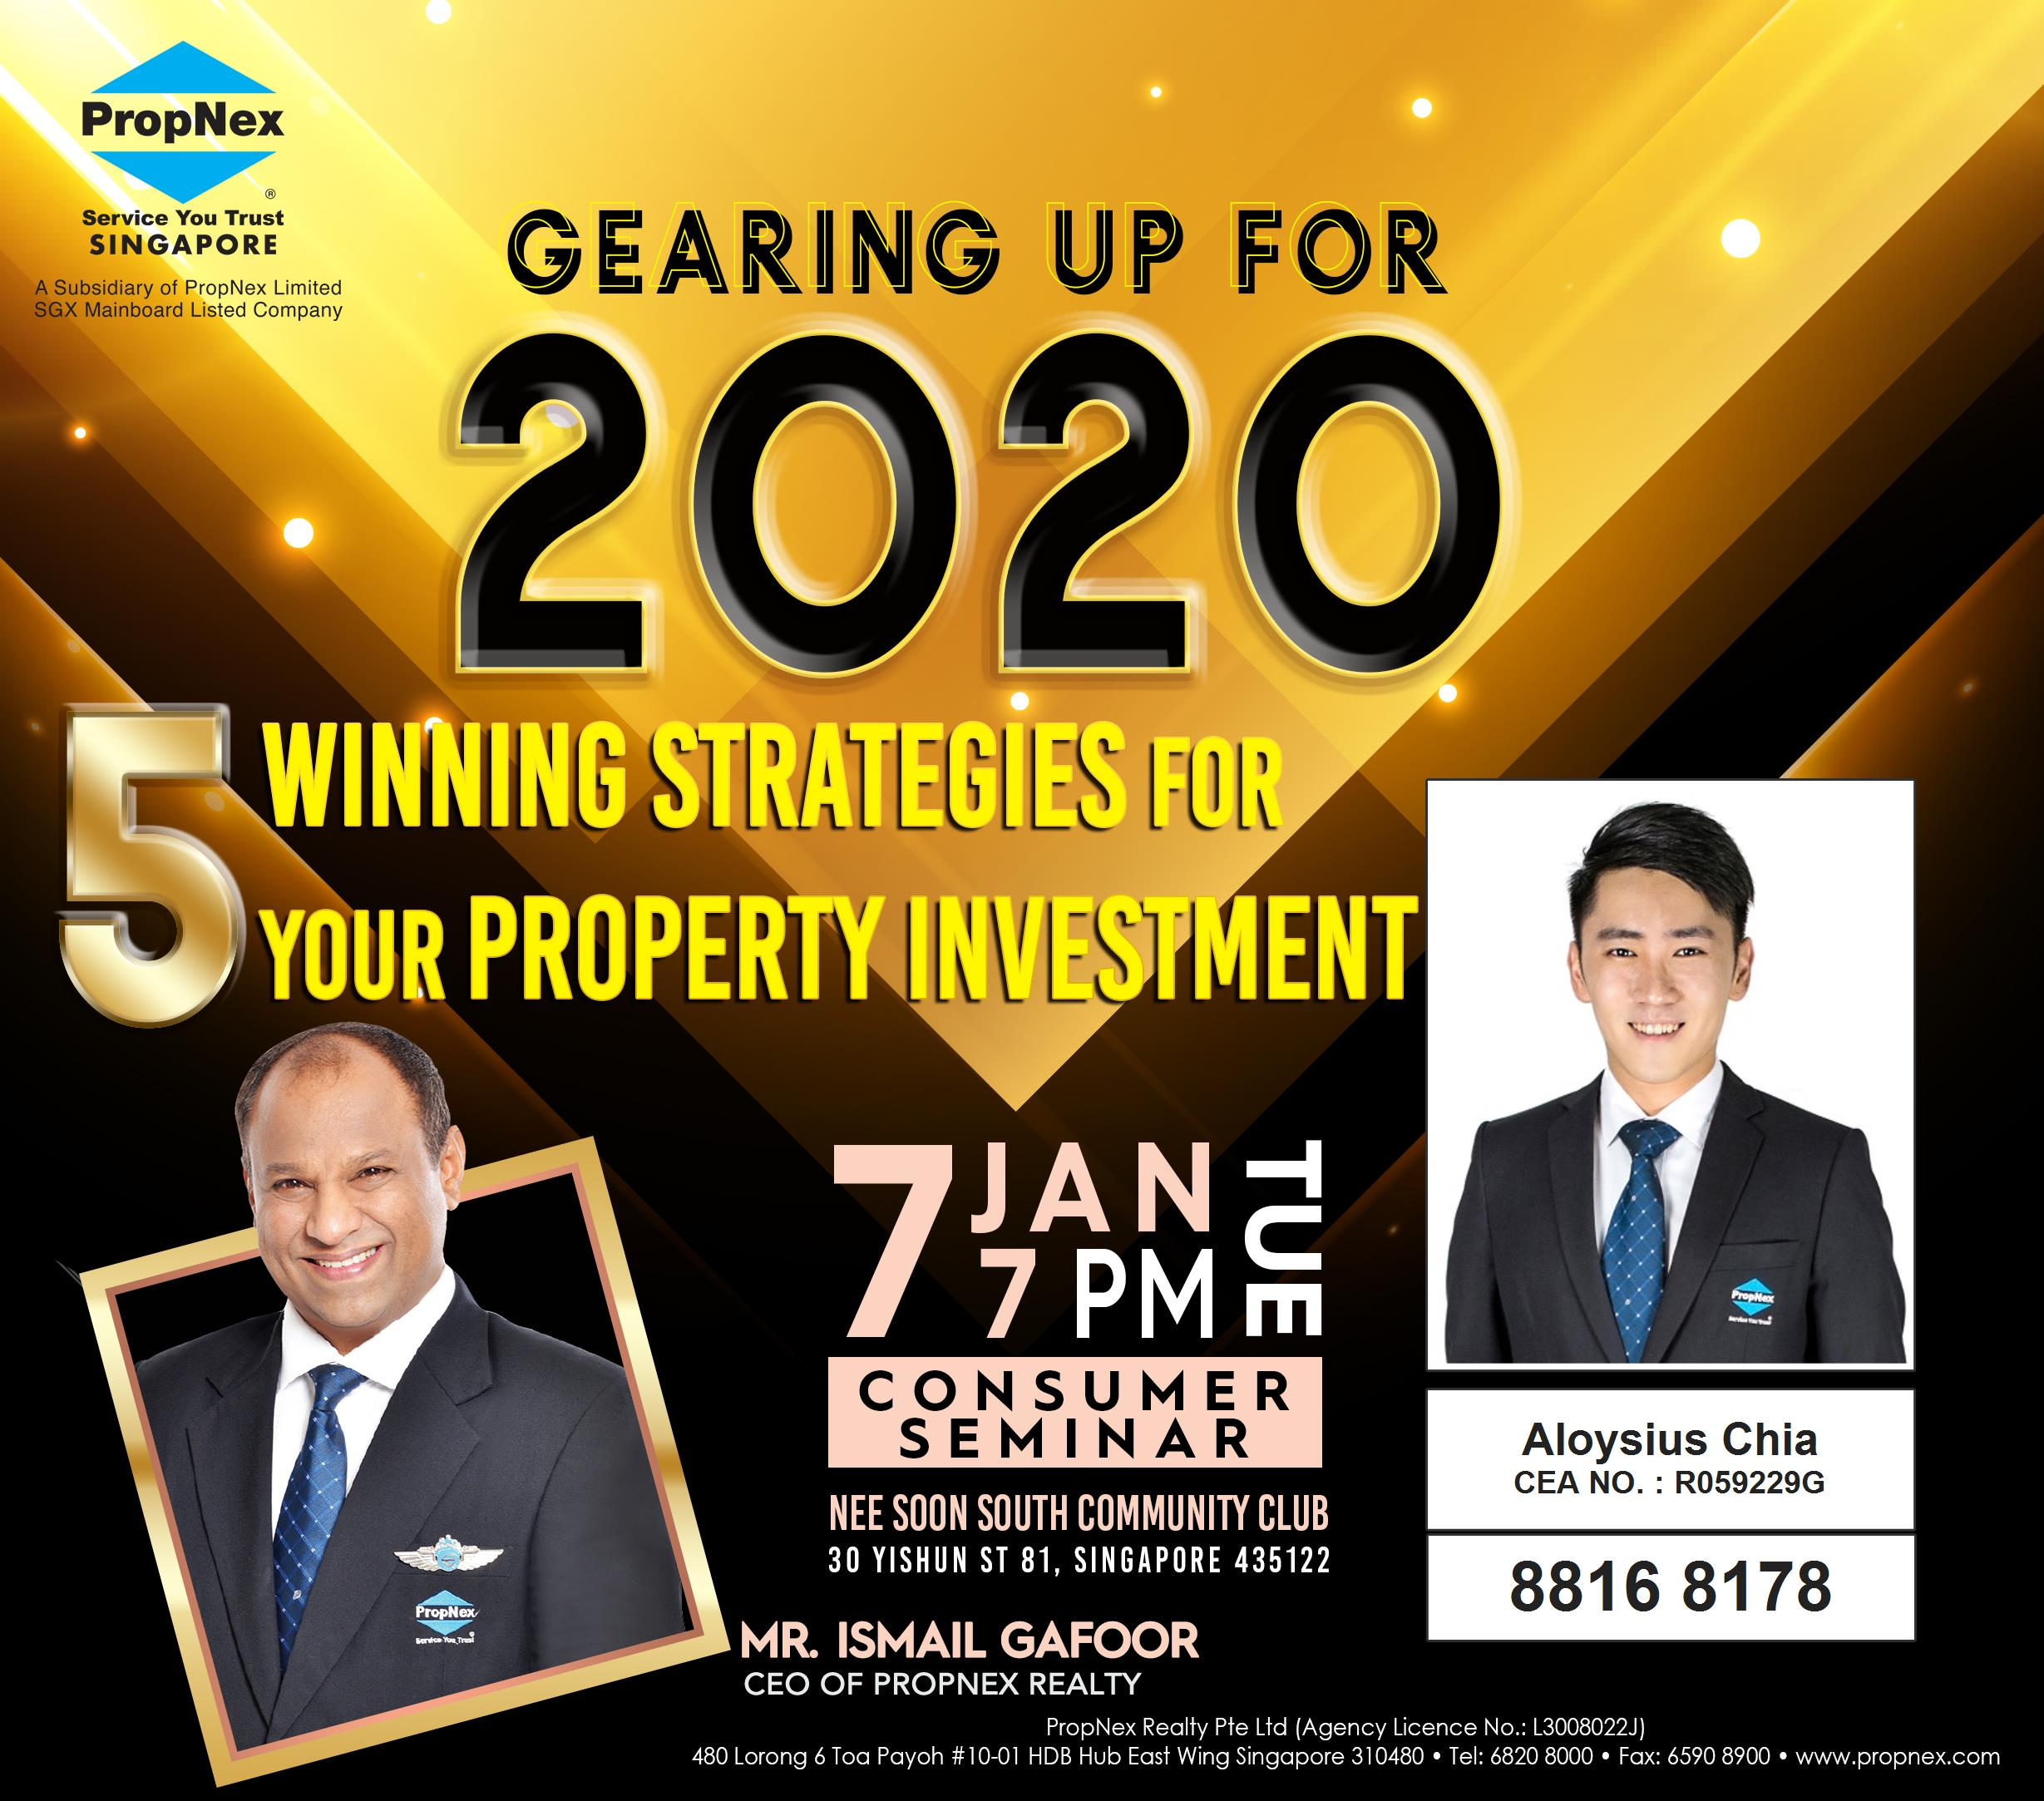 Gearing Up For 2020: 5 Winning Strategies For Your Property Investment